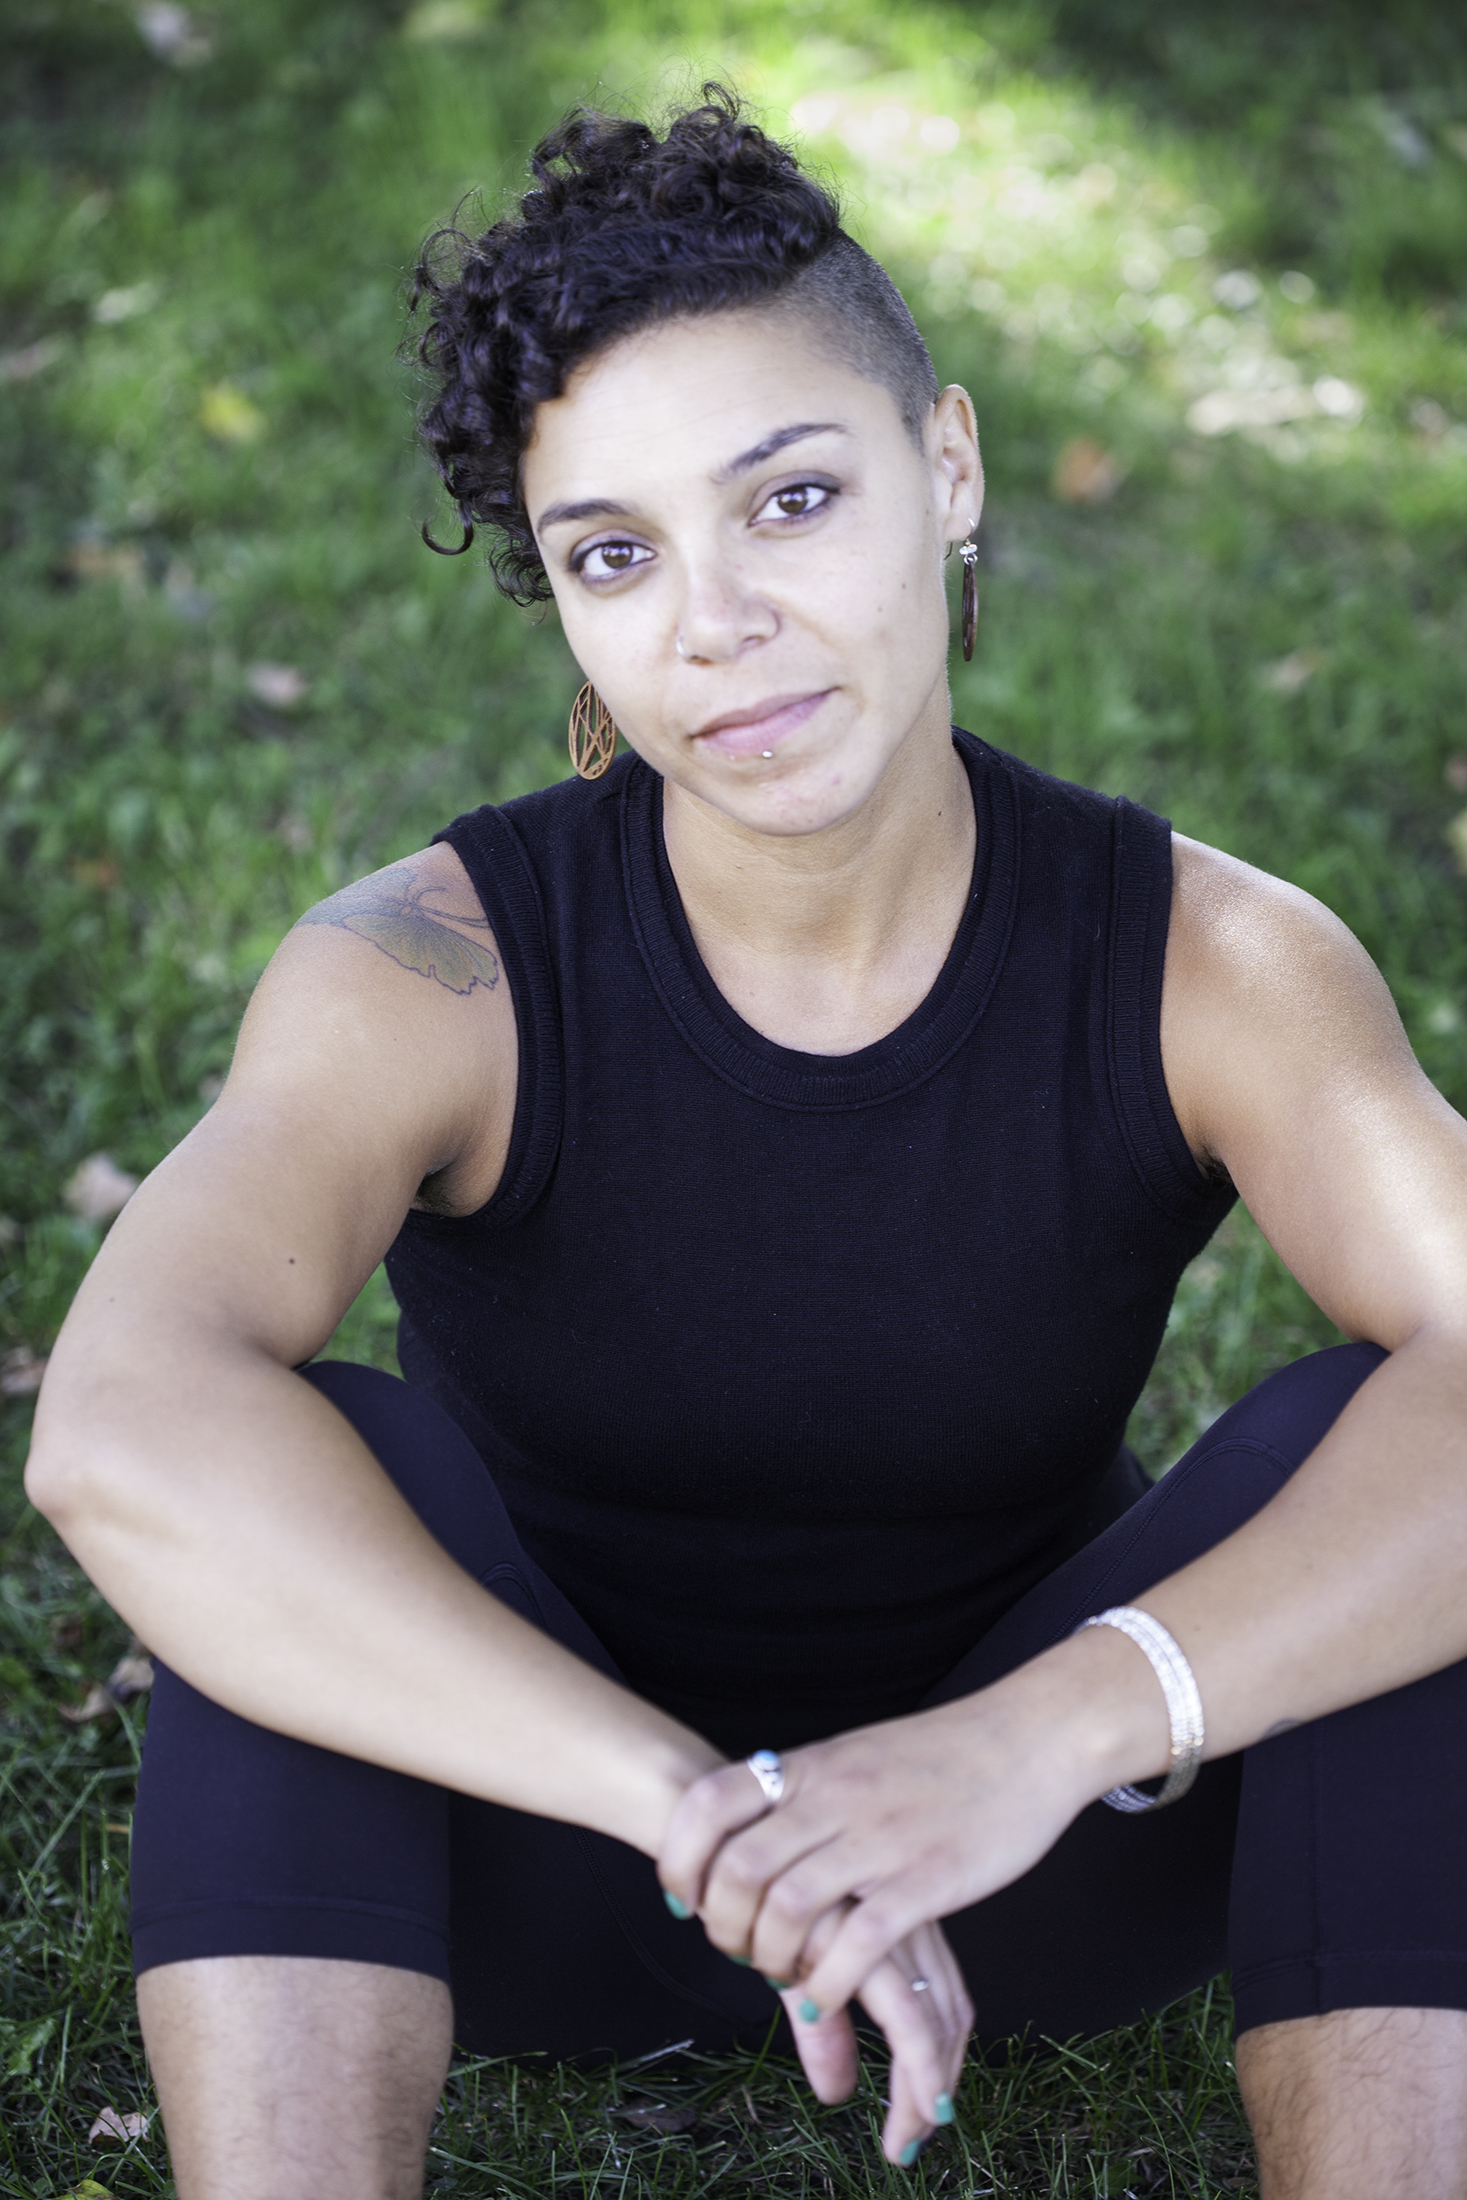 Rage Hezekiah is a Cave Canem and MacDowell Fellow who earned her MFA from Emerson College. She is a recipient of the Saint Botolph Emerging Artist Award in Literature and was nominated for Best New Poets, 2017. Her recent chapbook,   Unslakable  , is a 2018 Vella Chapbook Award Winner published by Paper Nautilus Press.  Stray Harbor , her debut full-length collection of poems, is forthcoming with Finishing Line Press. Rage's poems have appeared in   The Academy of American Poets   Poem-a-Day  ,   Rattle  ,   Salamander  , and several other journals and anthologies. You can find more of her work at  ragehezekiah.com .